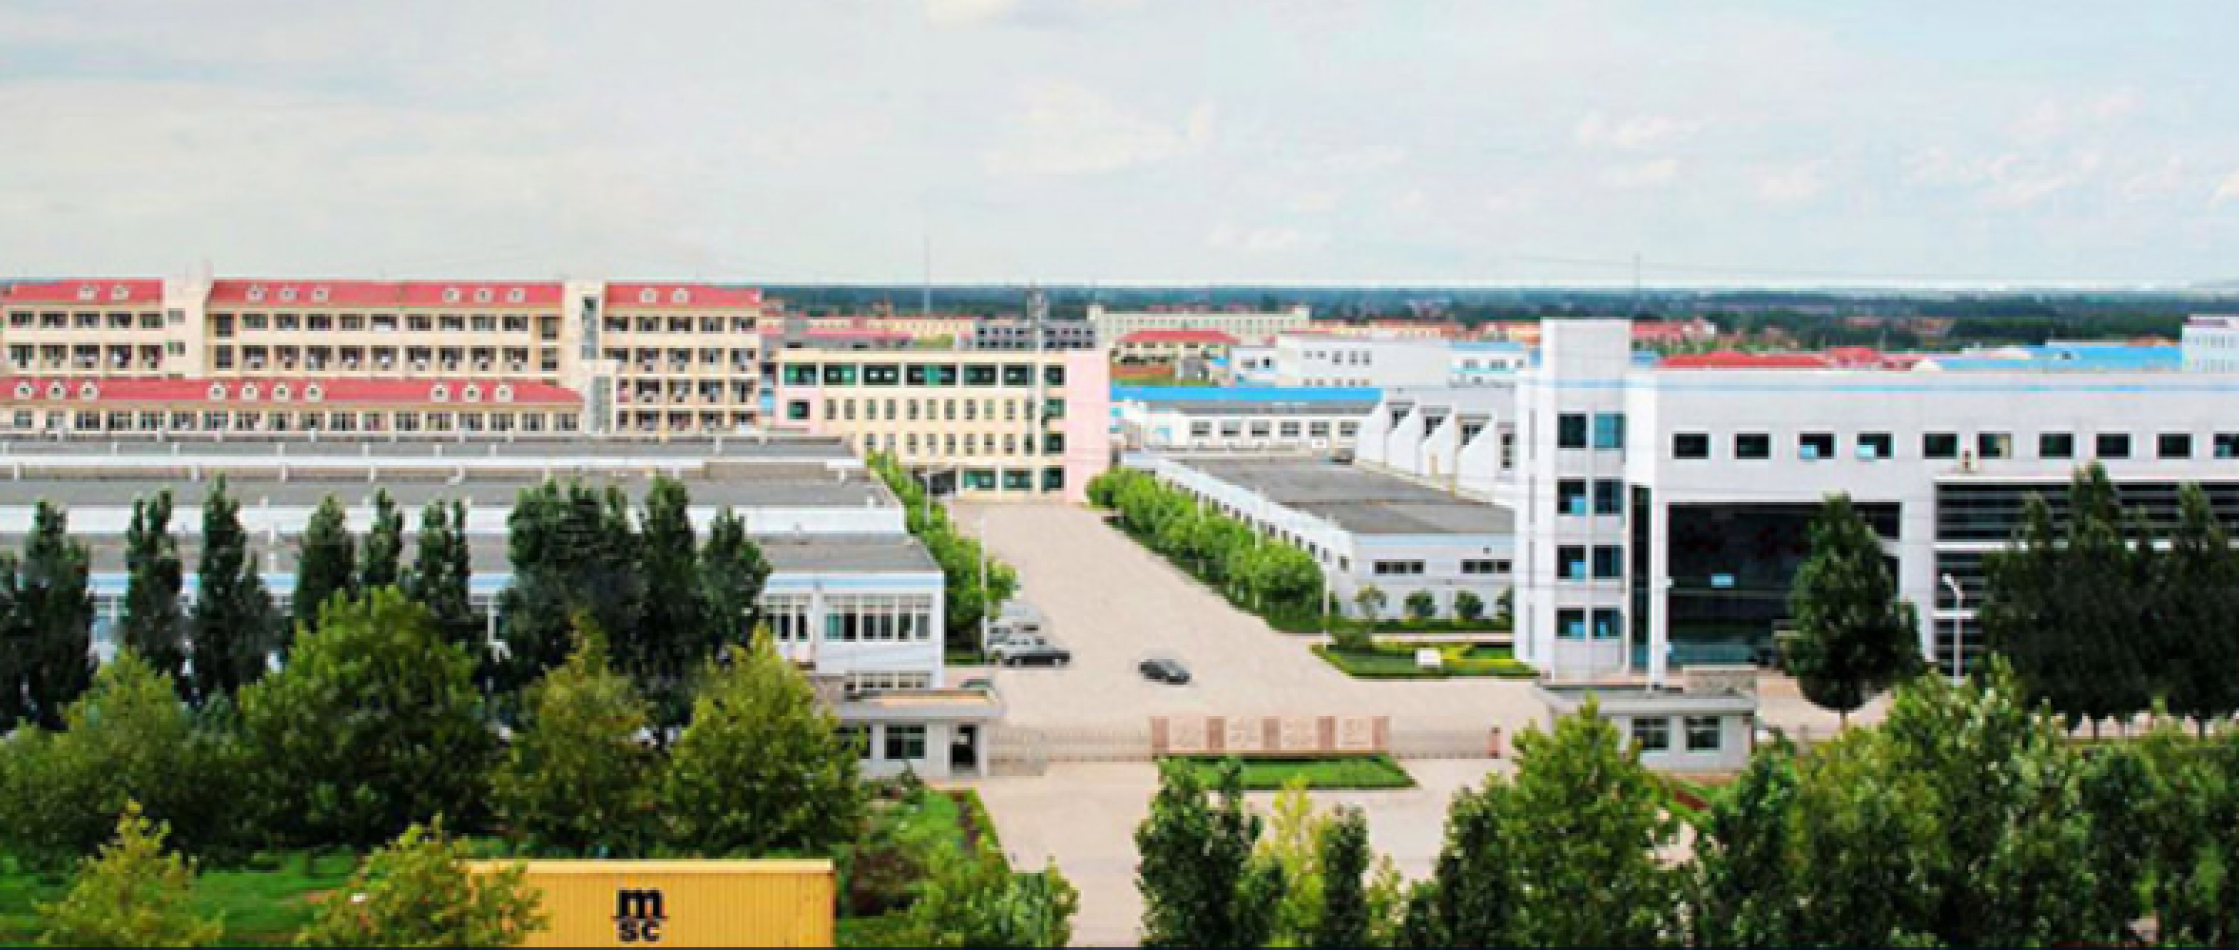 QINGDAO JINSUO TEXTILE PRINTING AND DYEING CO., LTD